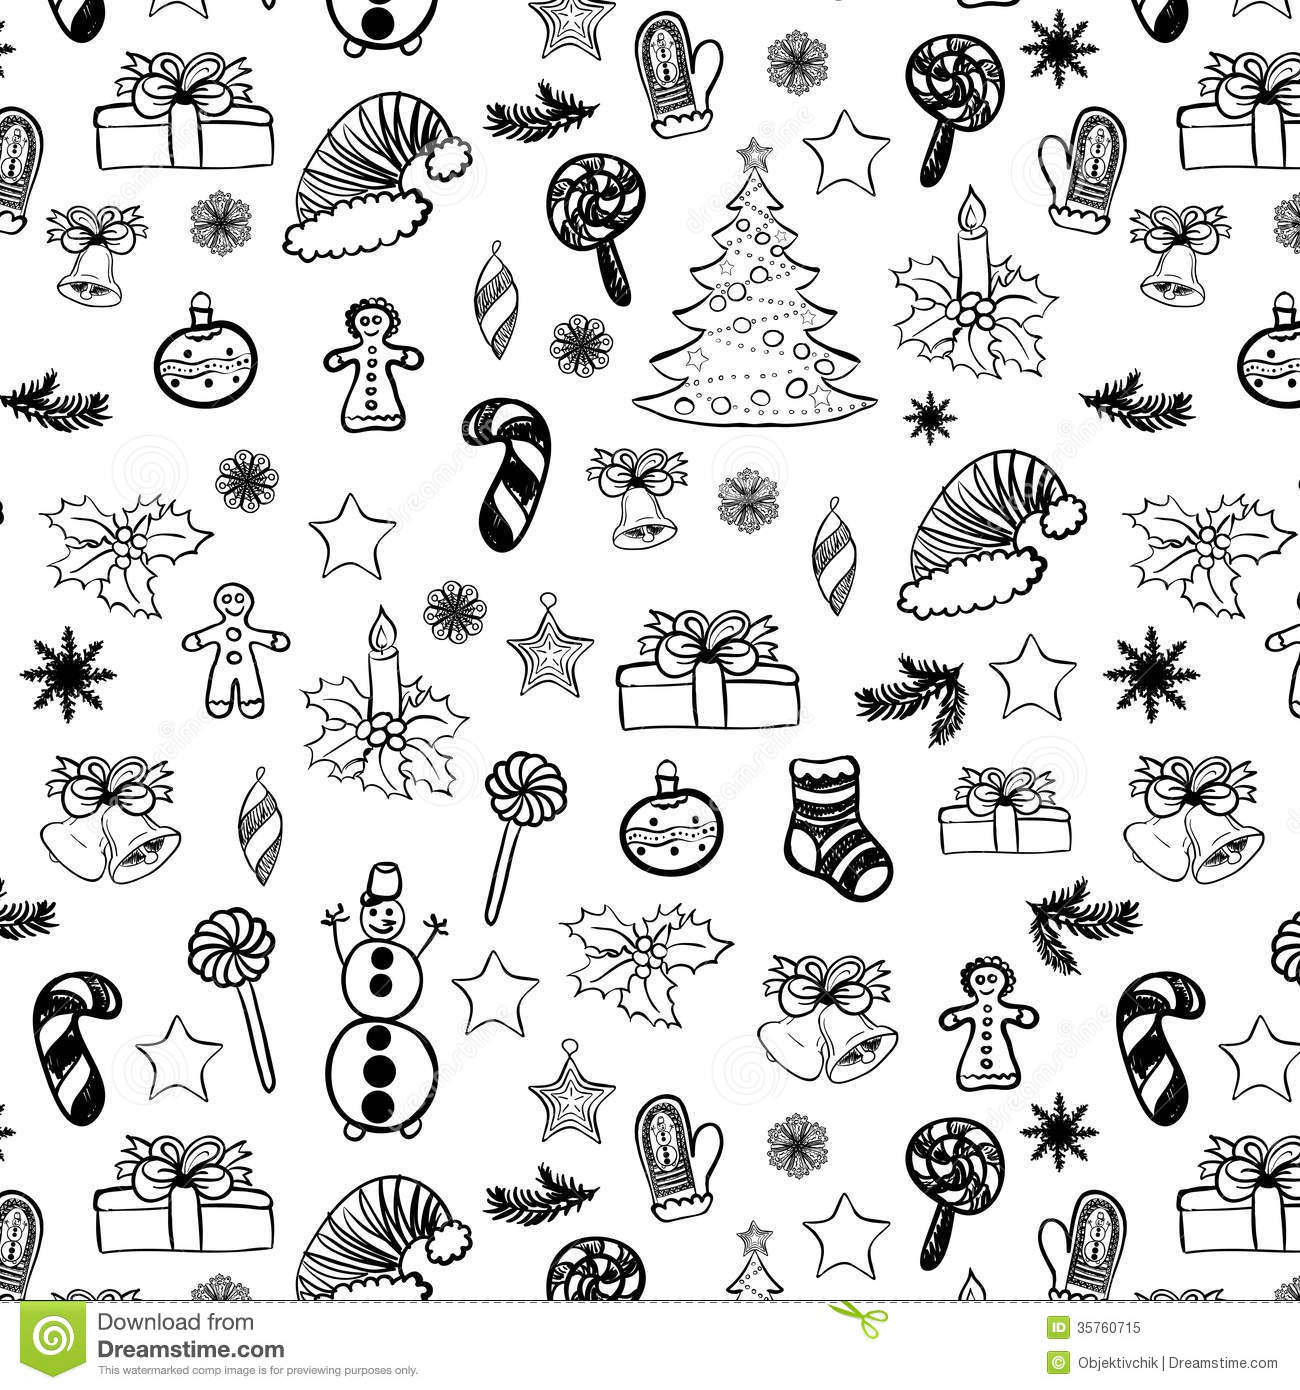 Free christmas vectors download christmas vector images and art free - Christmas Doodles Seamless Black On White 2 Royalty Free Stock Photo